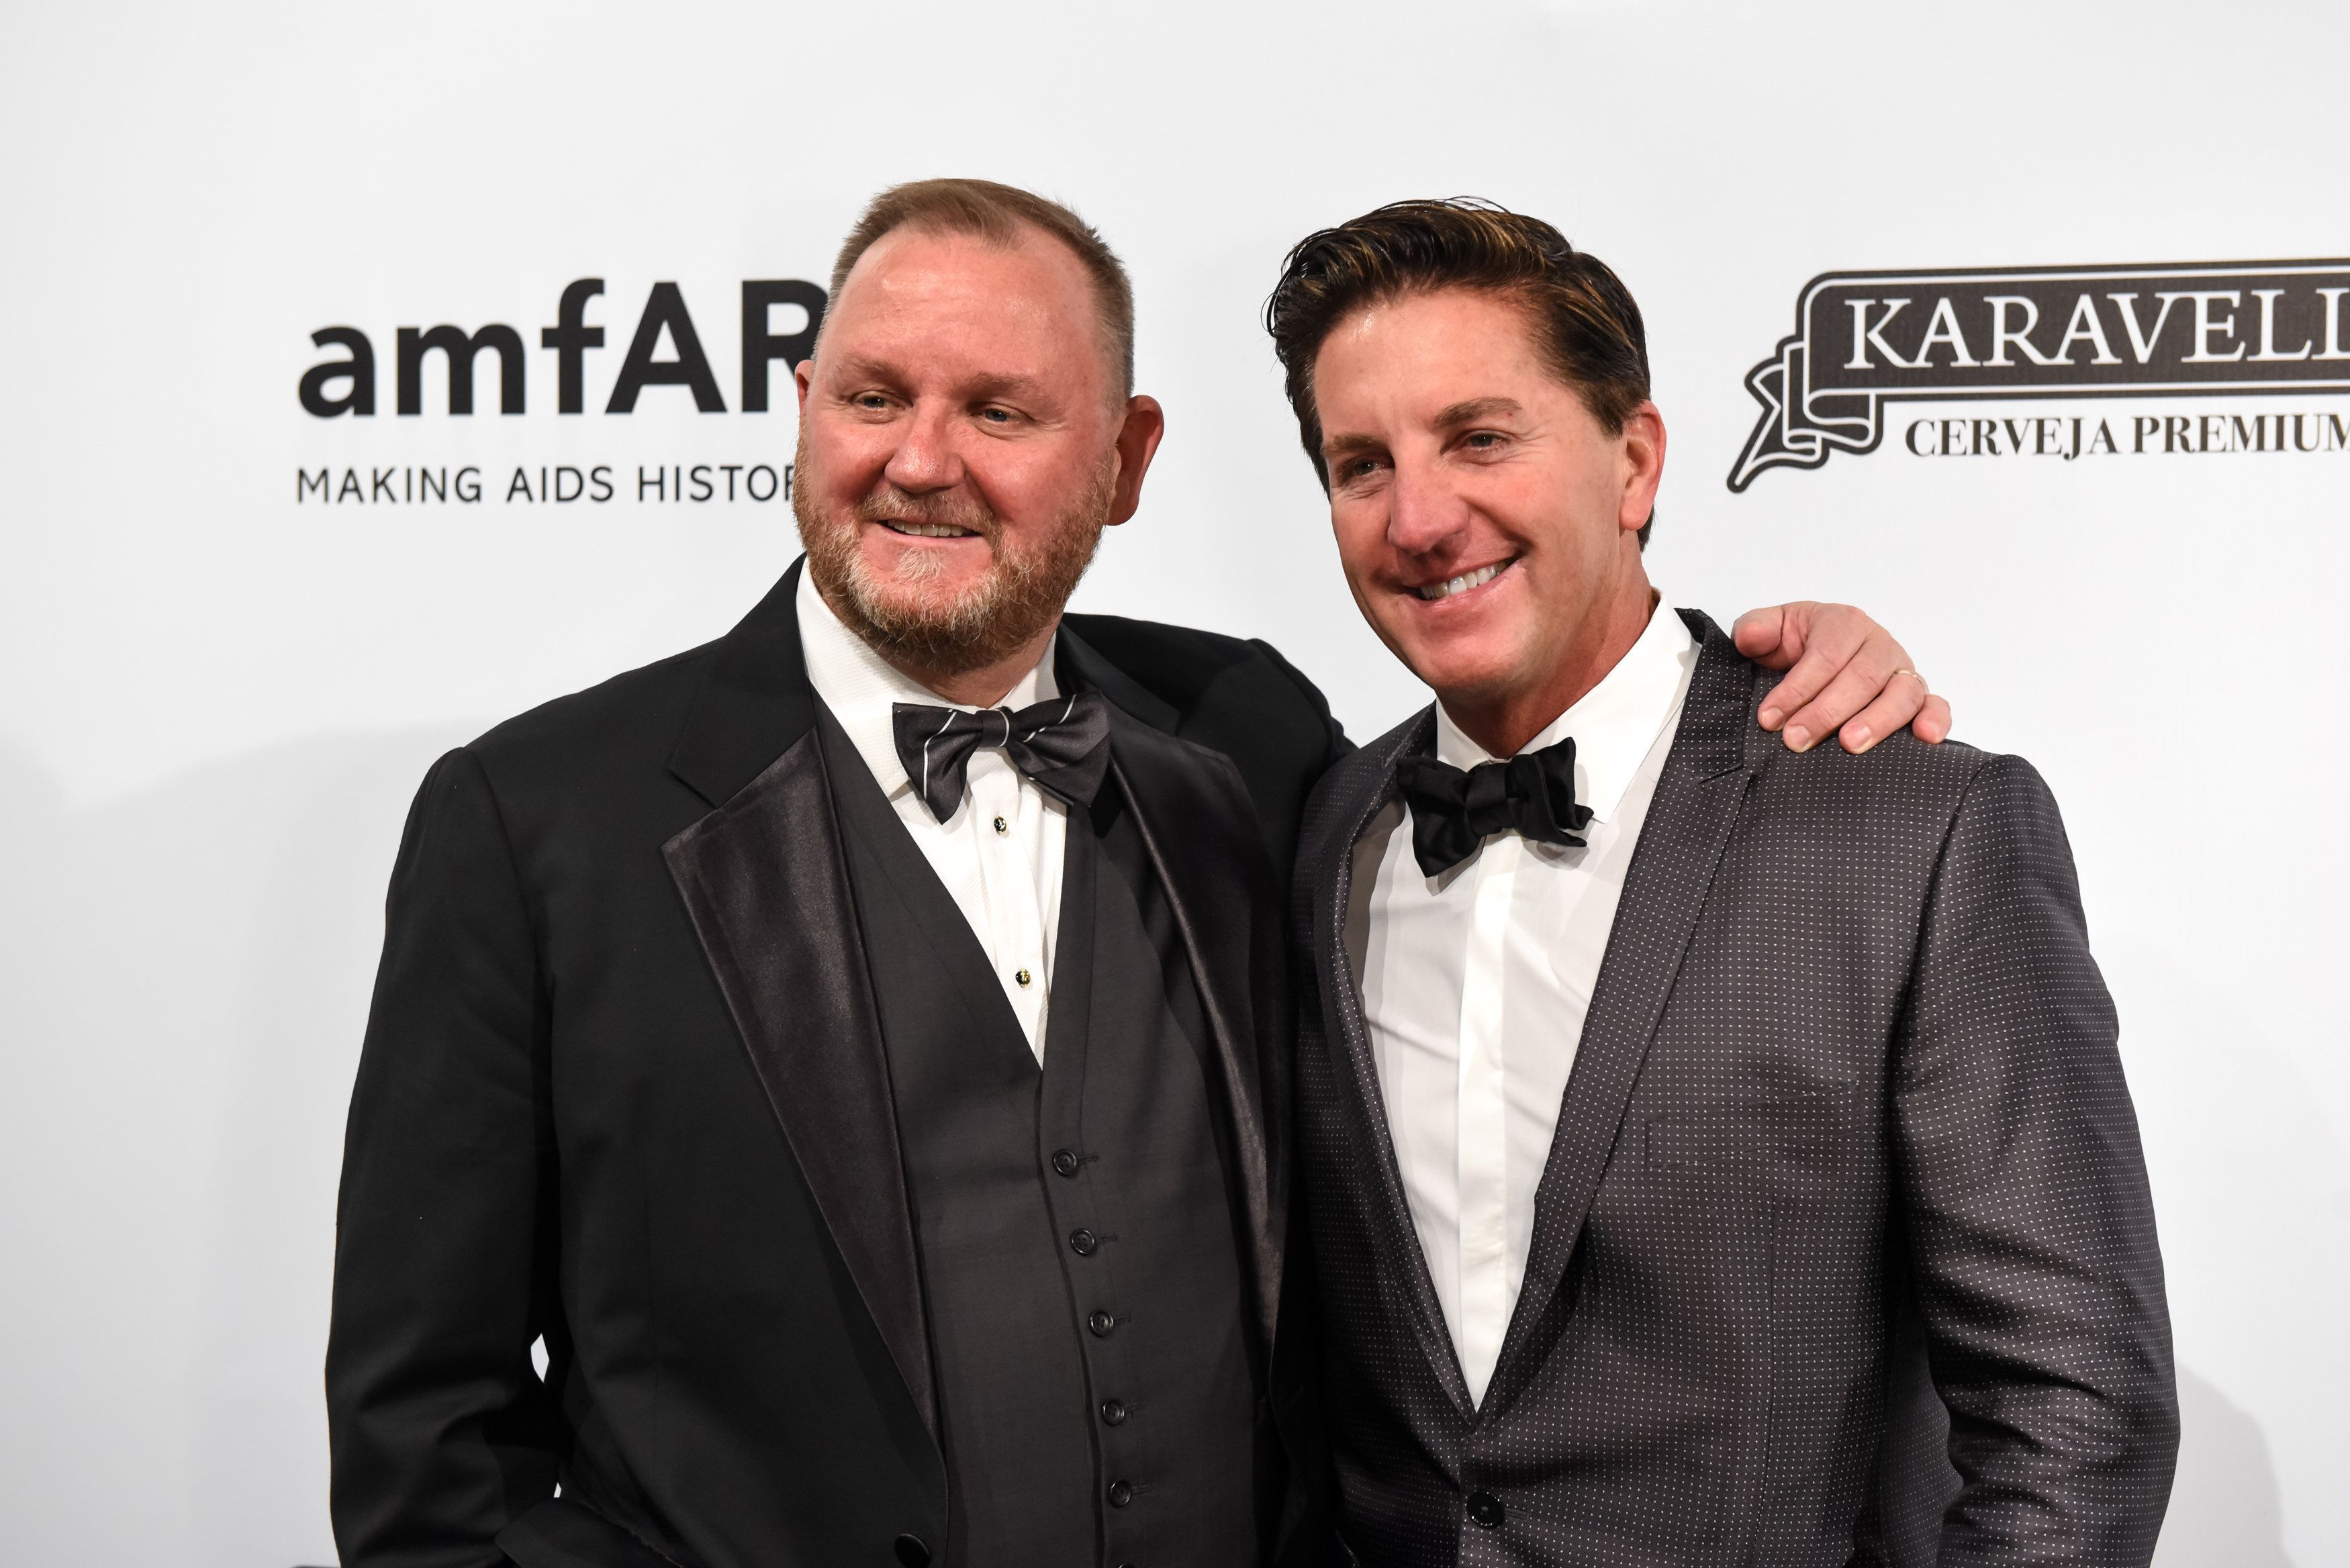 SAO PAULO, BRAZIL - APRIL 13: (L-R)Kevin Robert Frost and Gary Tigges attend the 2018 amfAR gala Sao Paulo at the home of Dinho Diniz on April 13, 2018 in Sao Paulo, Brazil. (Photo by Gabriel Cappelletti/Getty Images for amfAR)